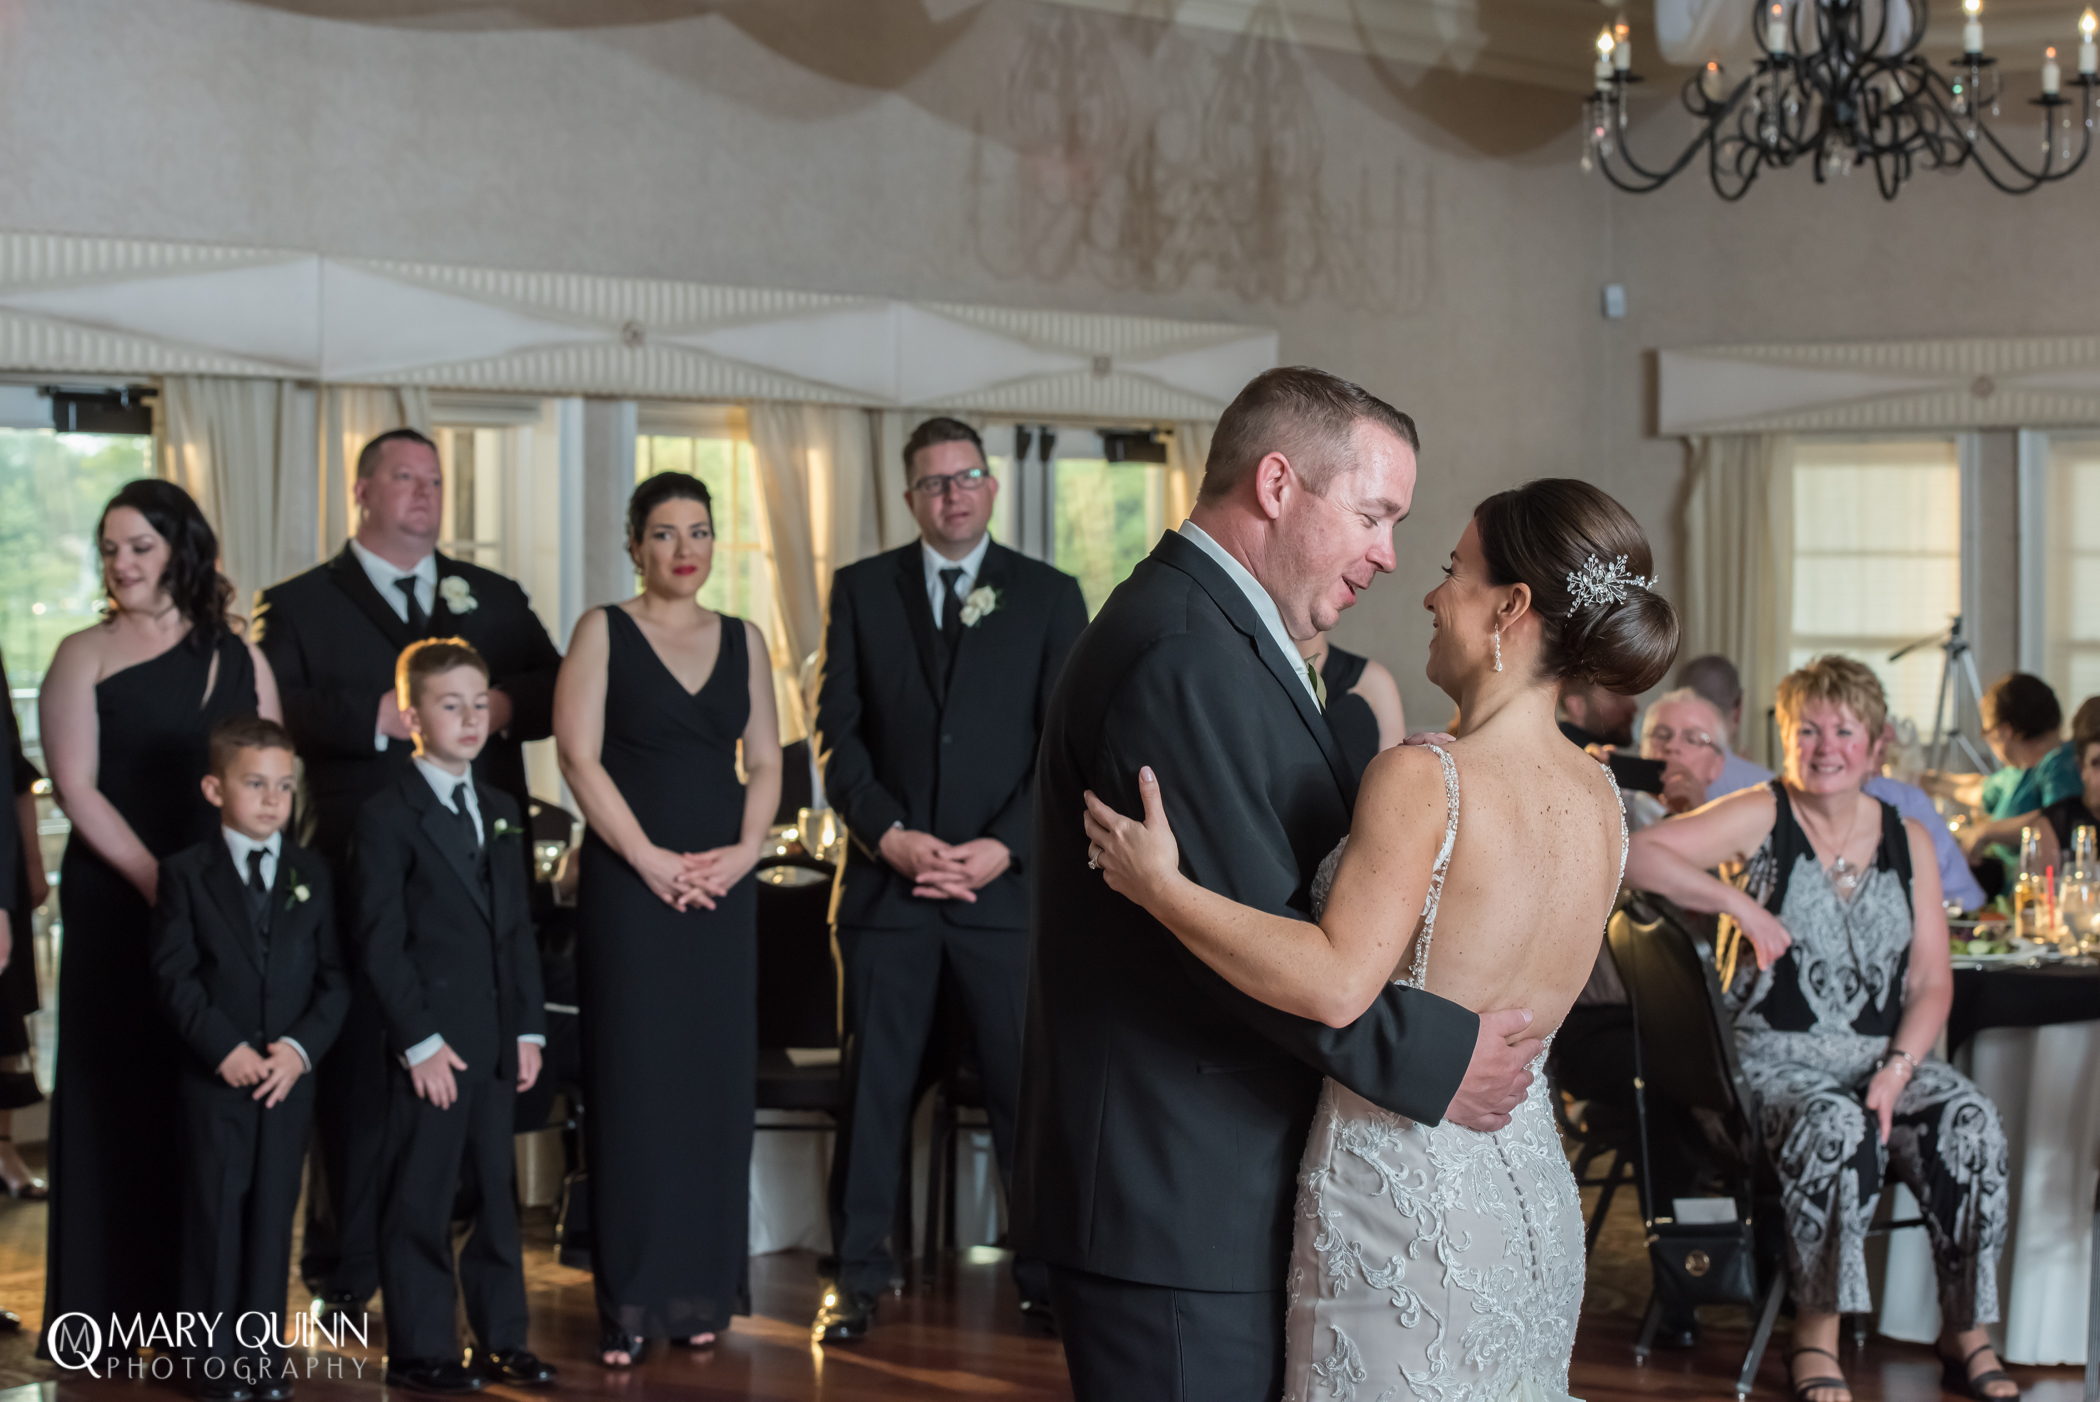 Wedding Photographer in South Jersey